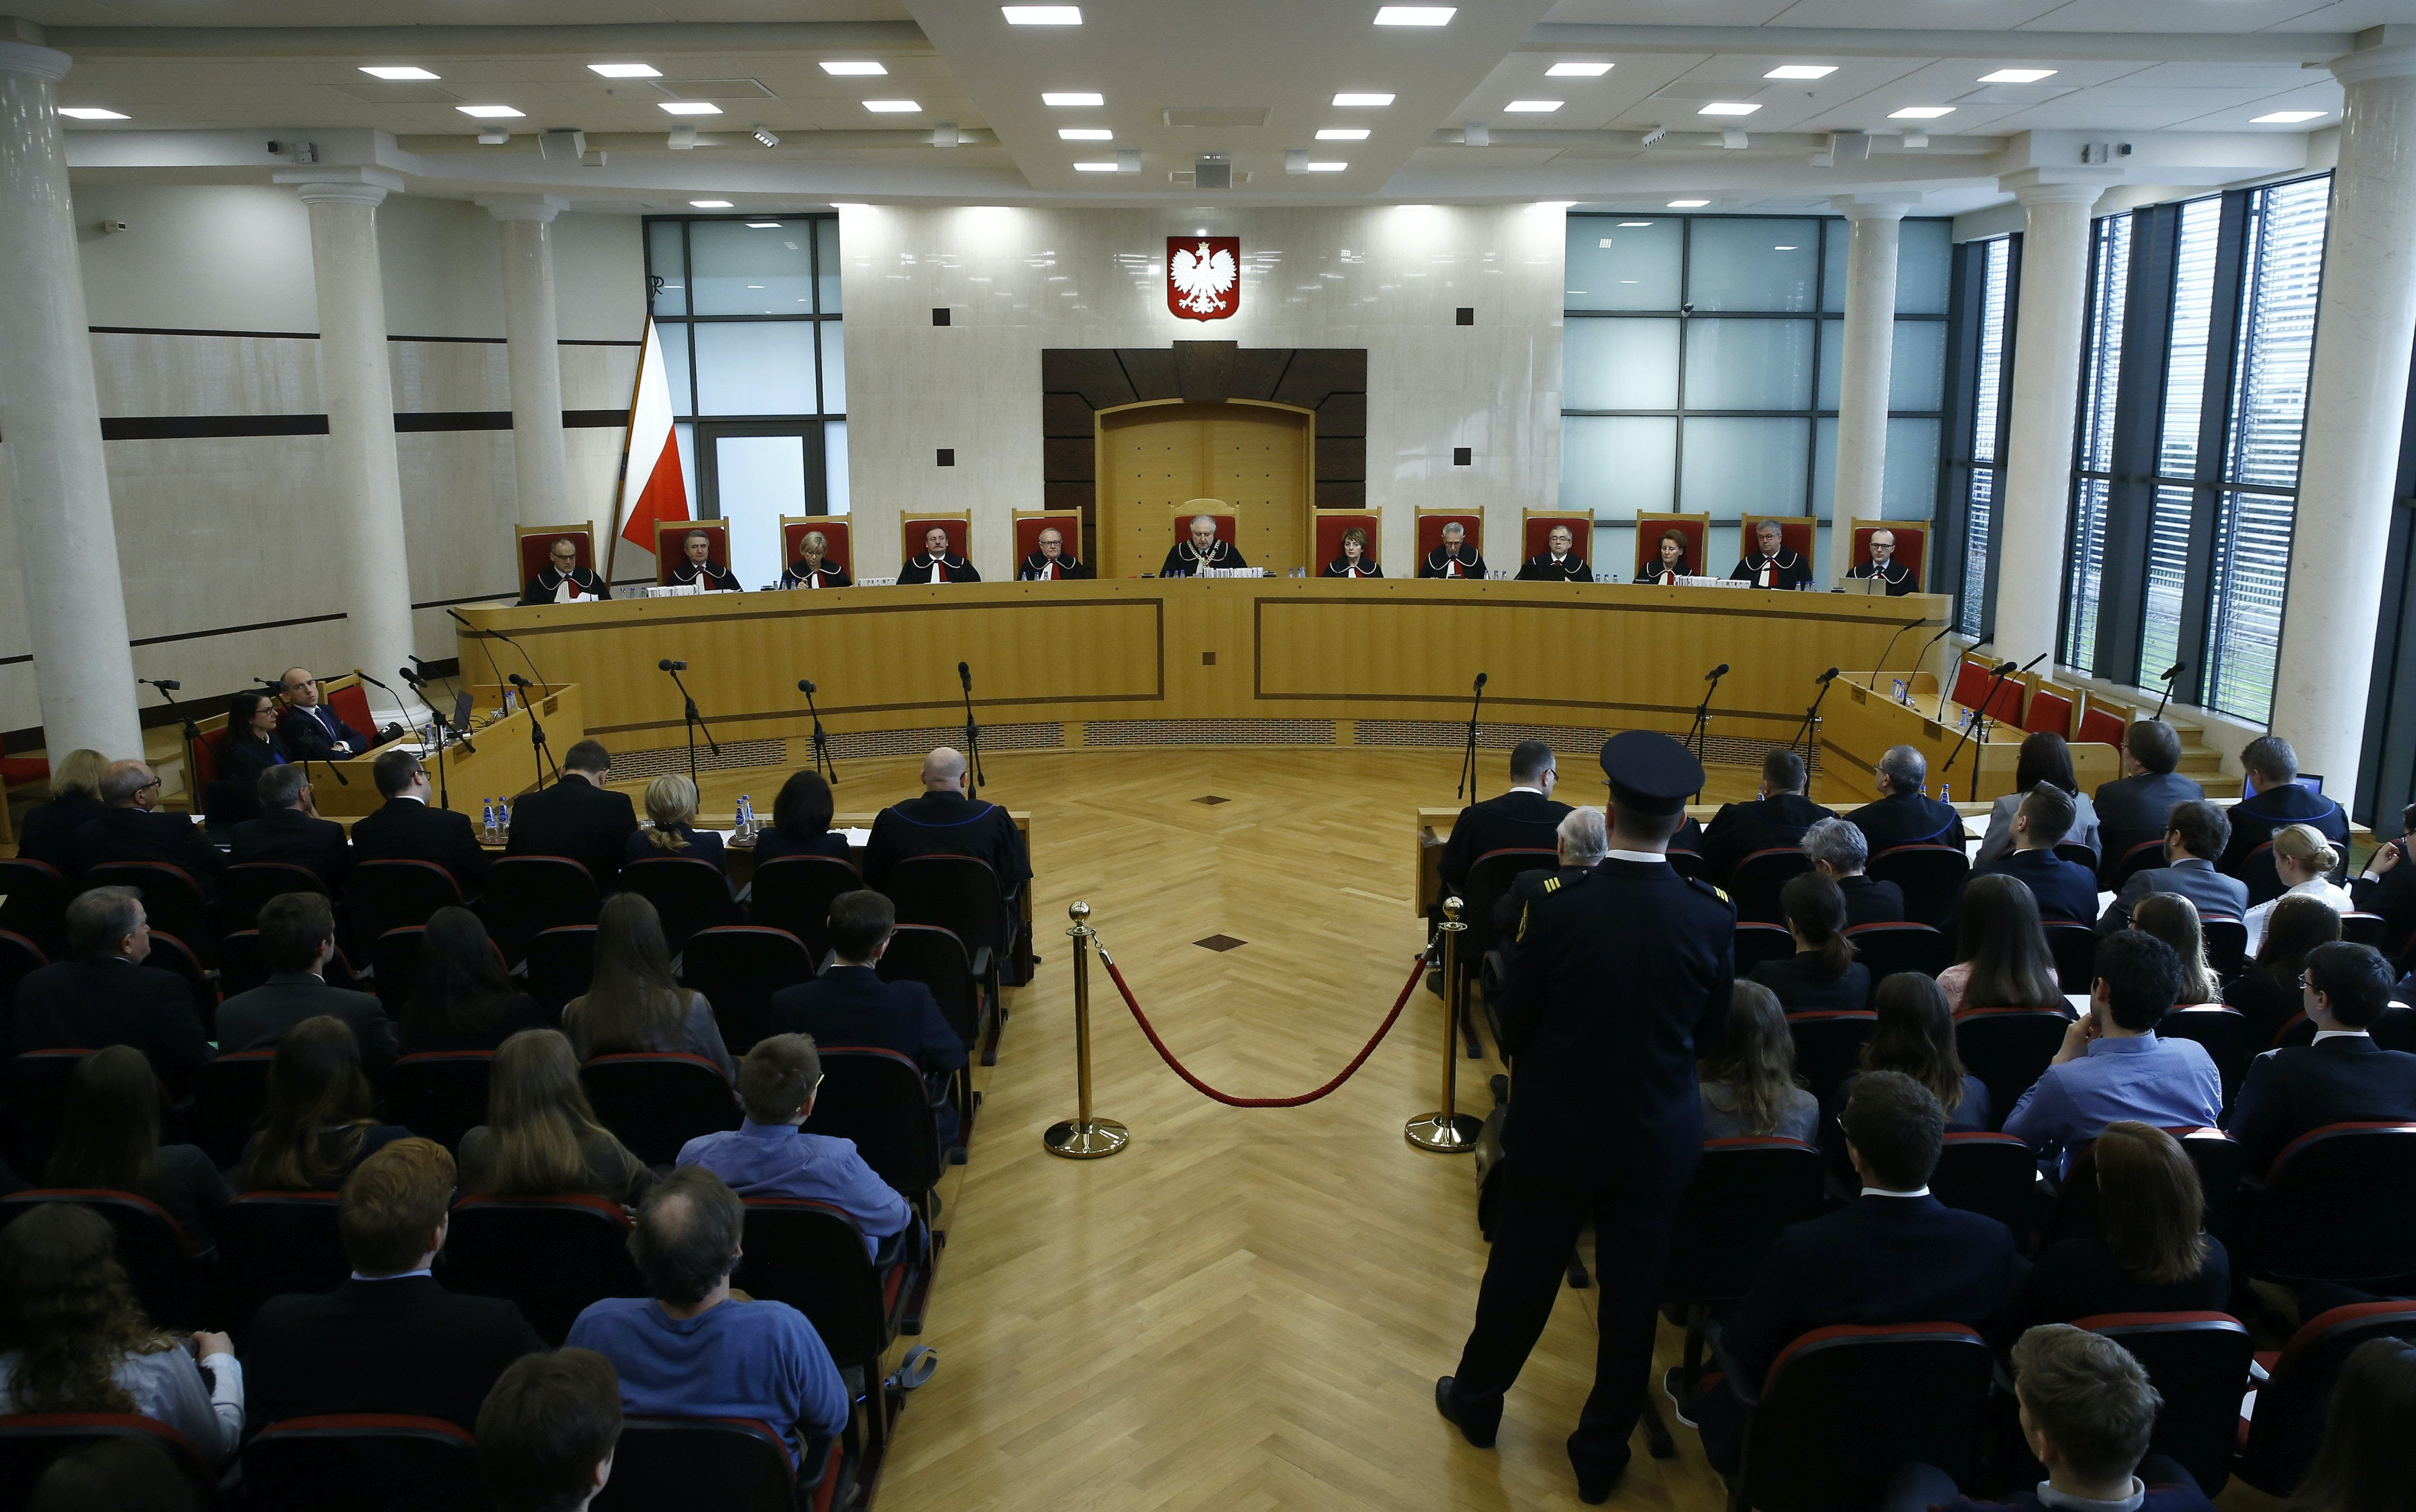 Several judges of the Constitutional Tribunal, seen here, dissented from the majority opinion and pointed out that some of their colleagues were improperly appointed to the bench.